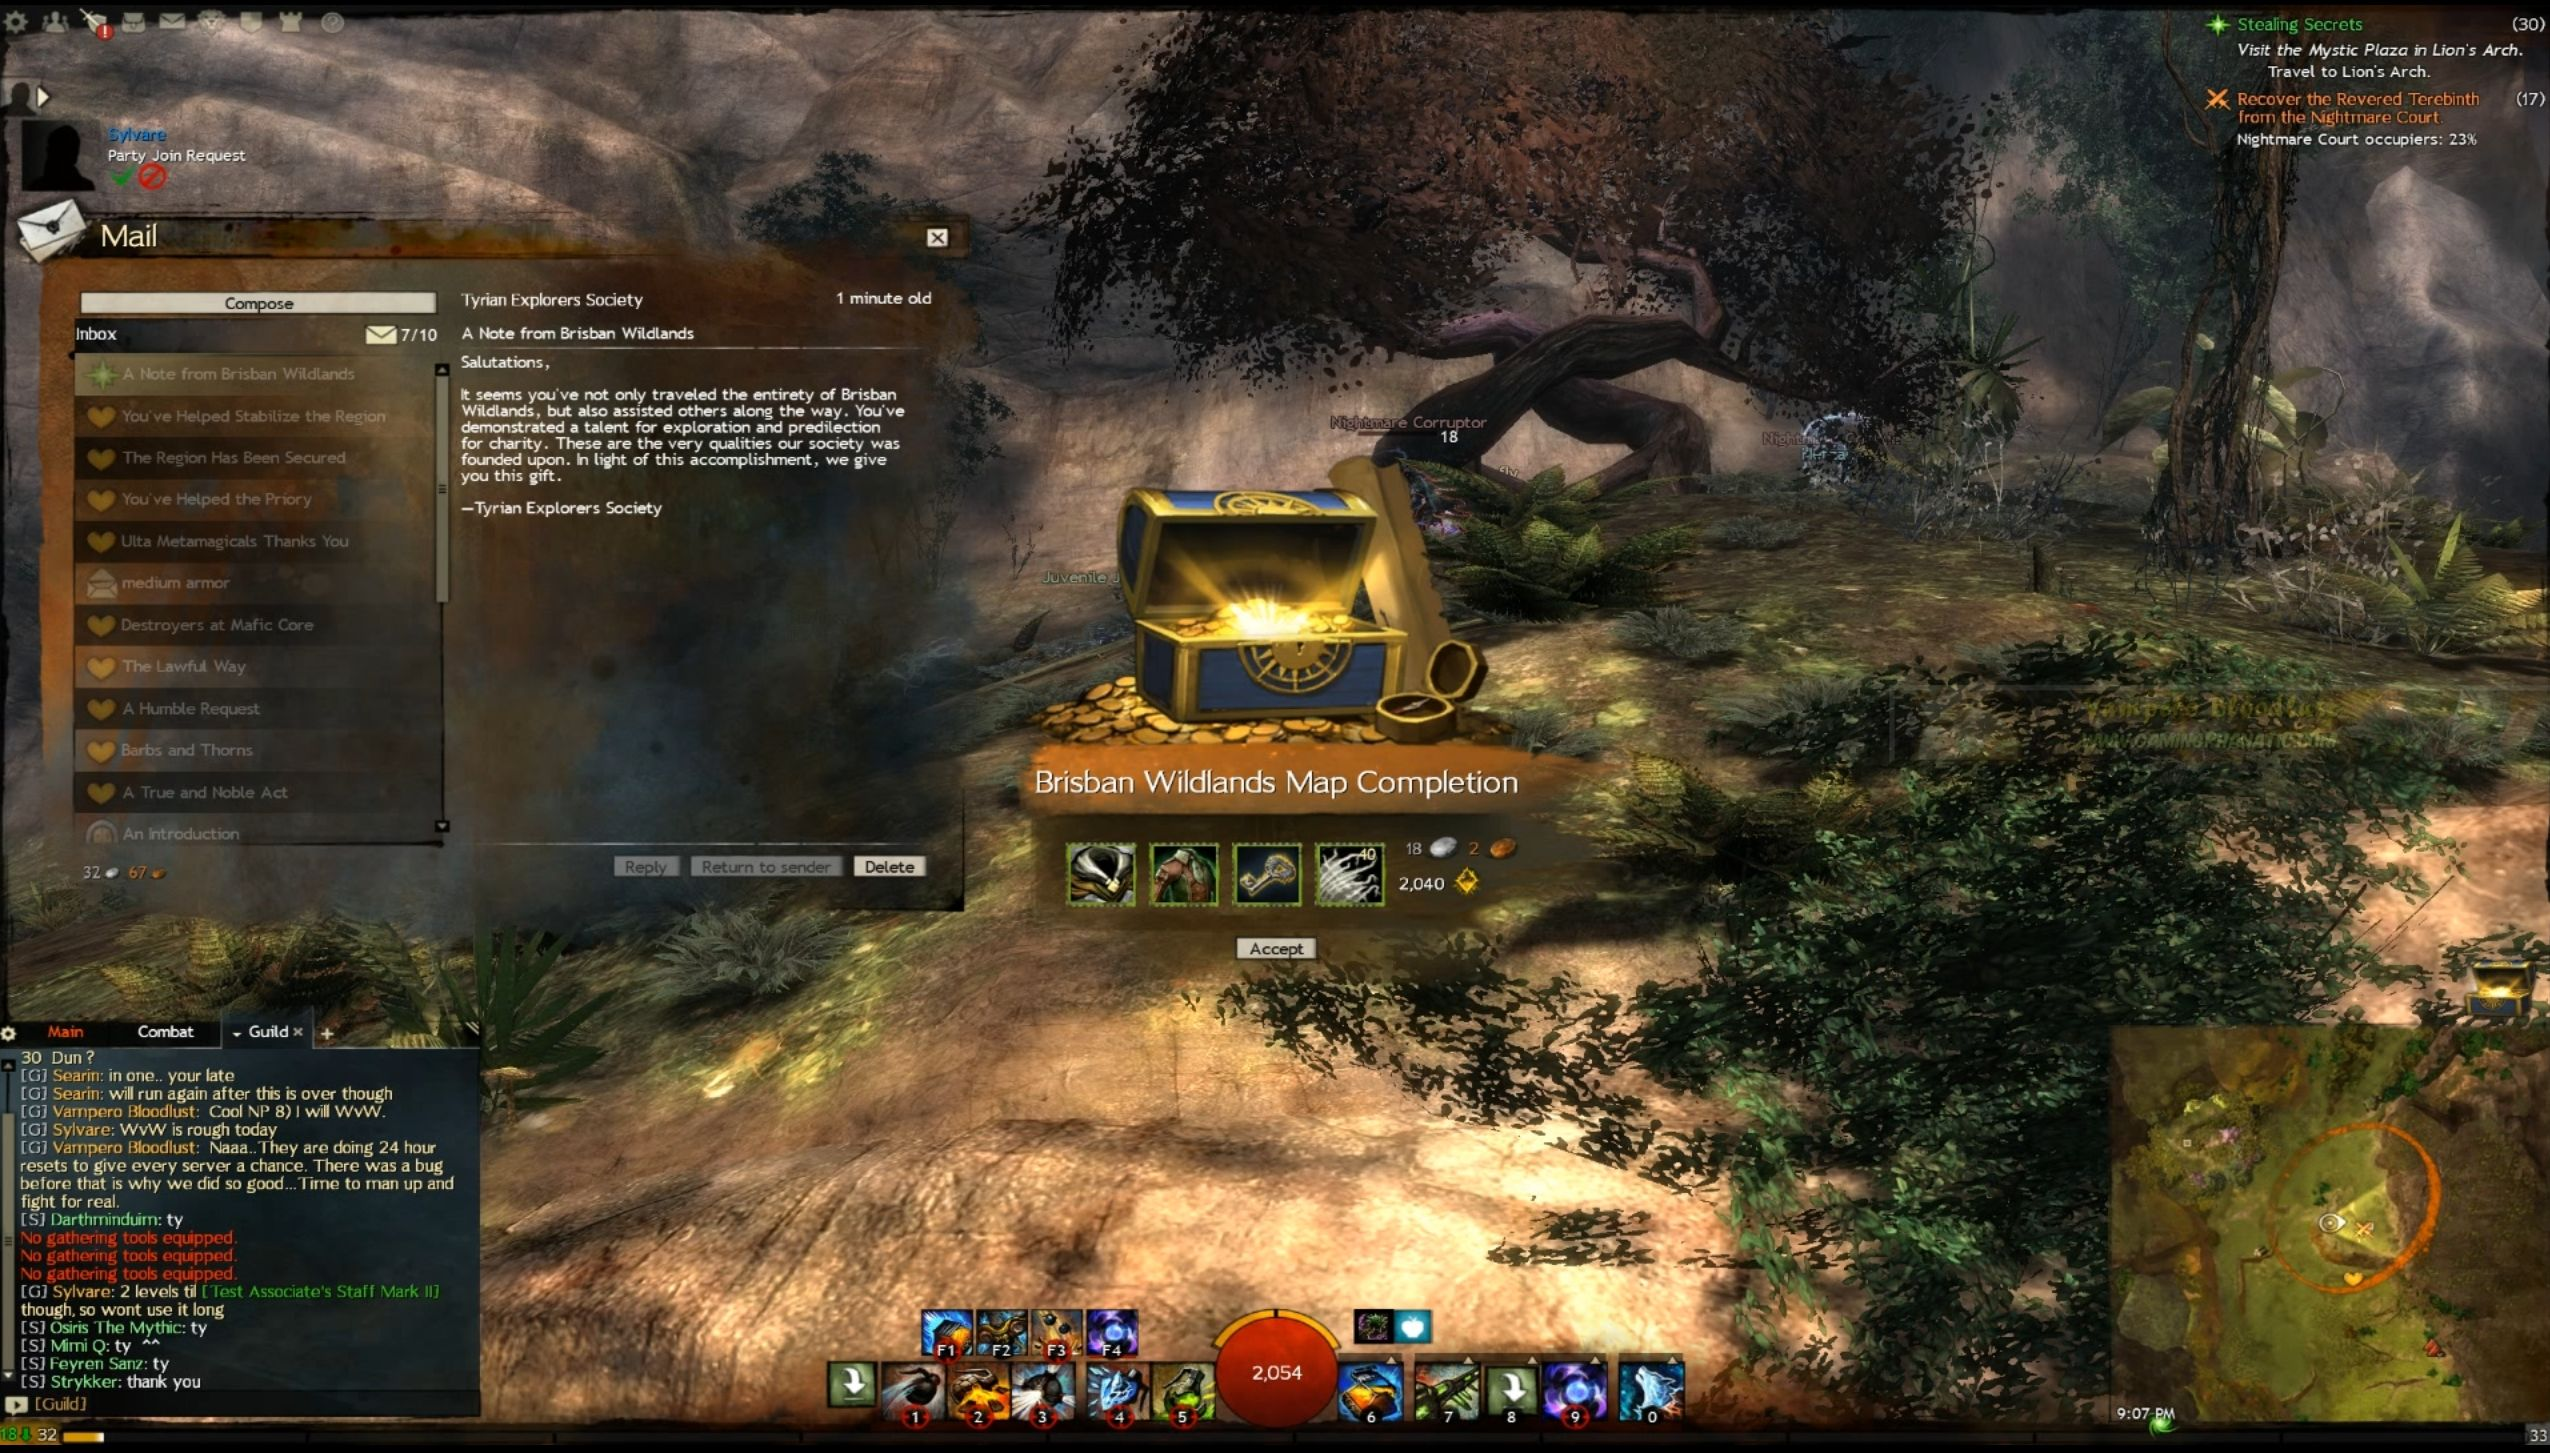 guild wars map completion guide